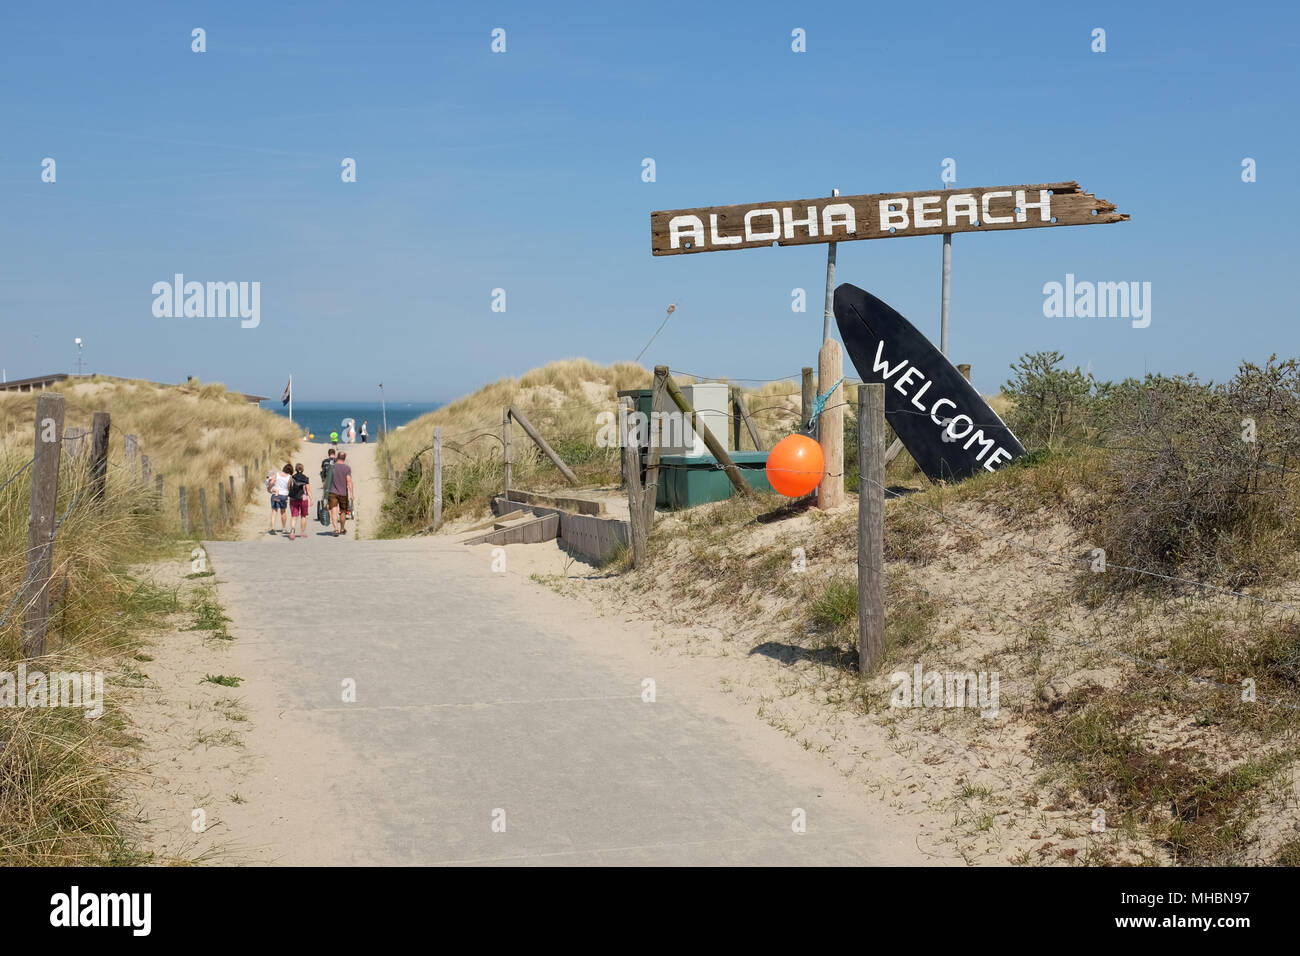 Entry to the Aloha Beach Club, located on one of the many beaches in Zeeland in the Netherlands. - Stock Image